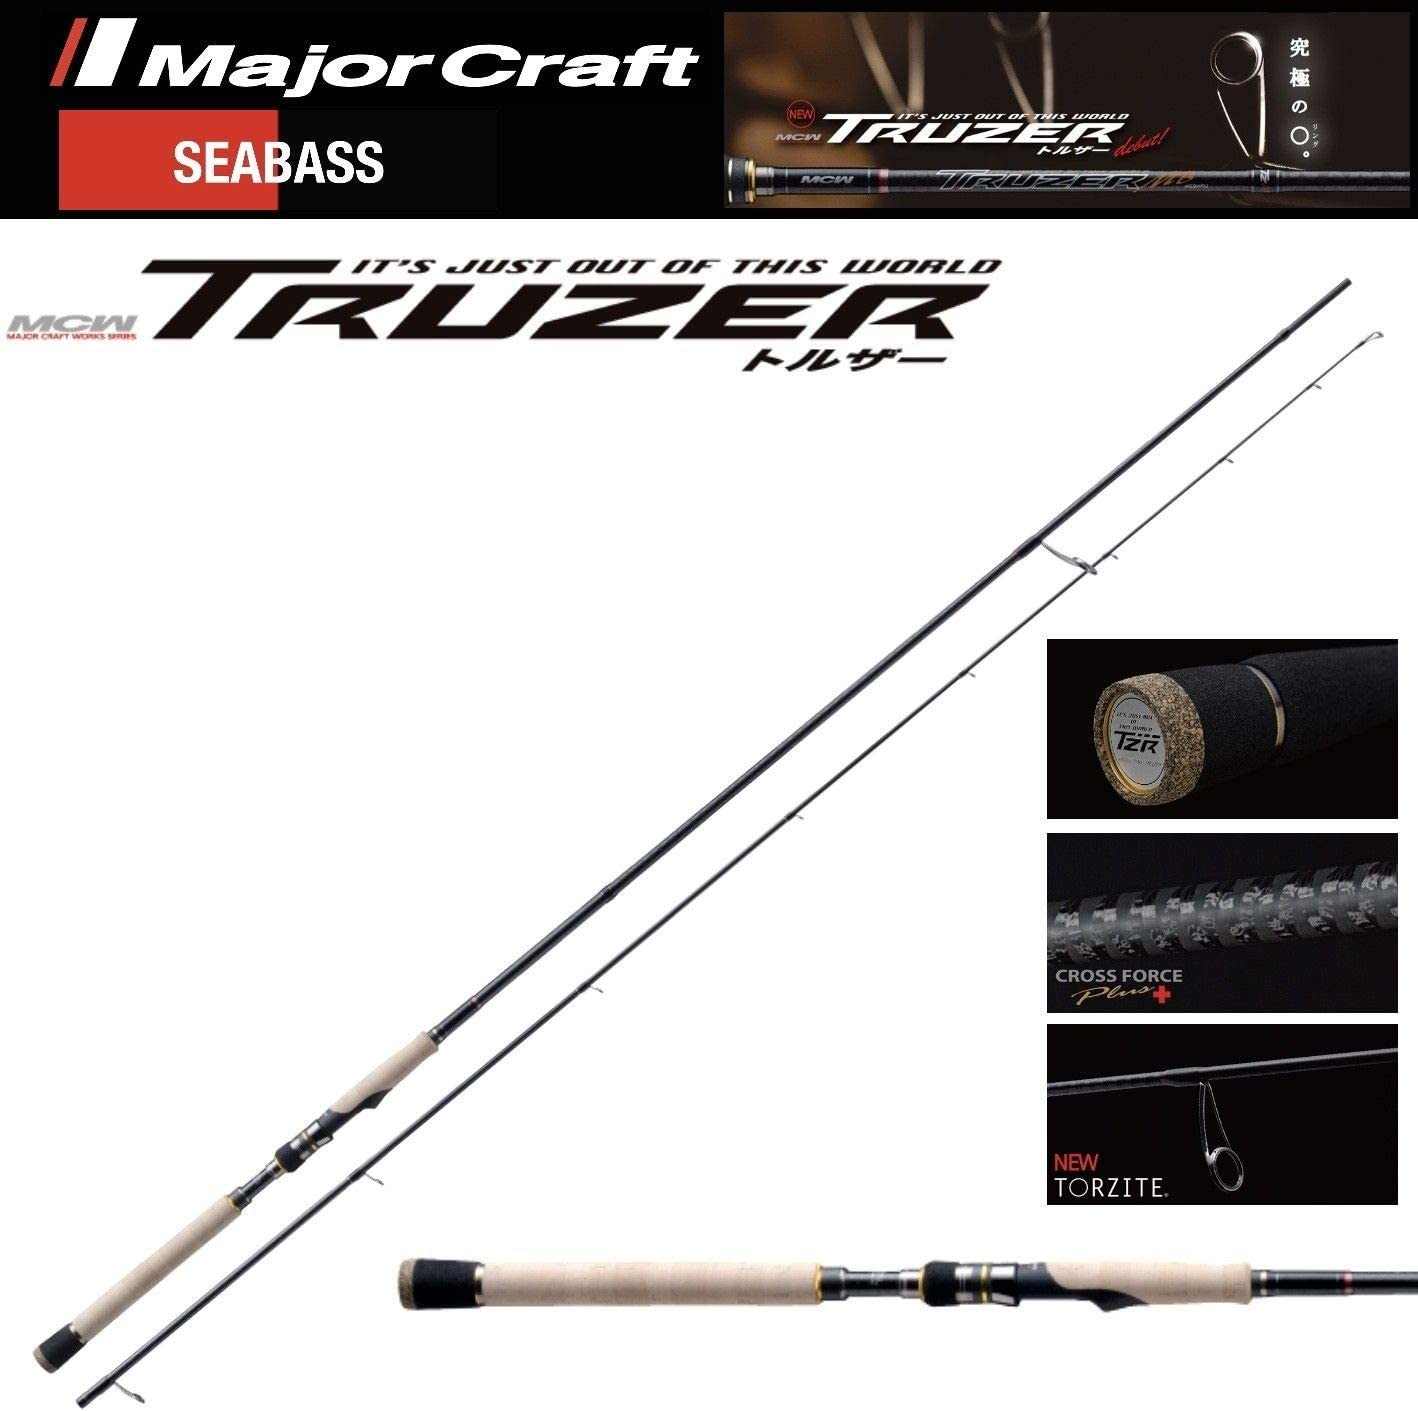 Major Craft Premium - Caña de Pescar, TZS 902L, TZS 902L: Amazon ...